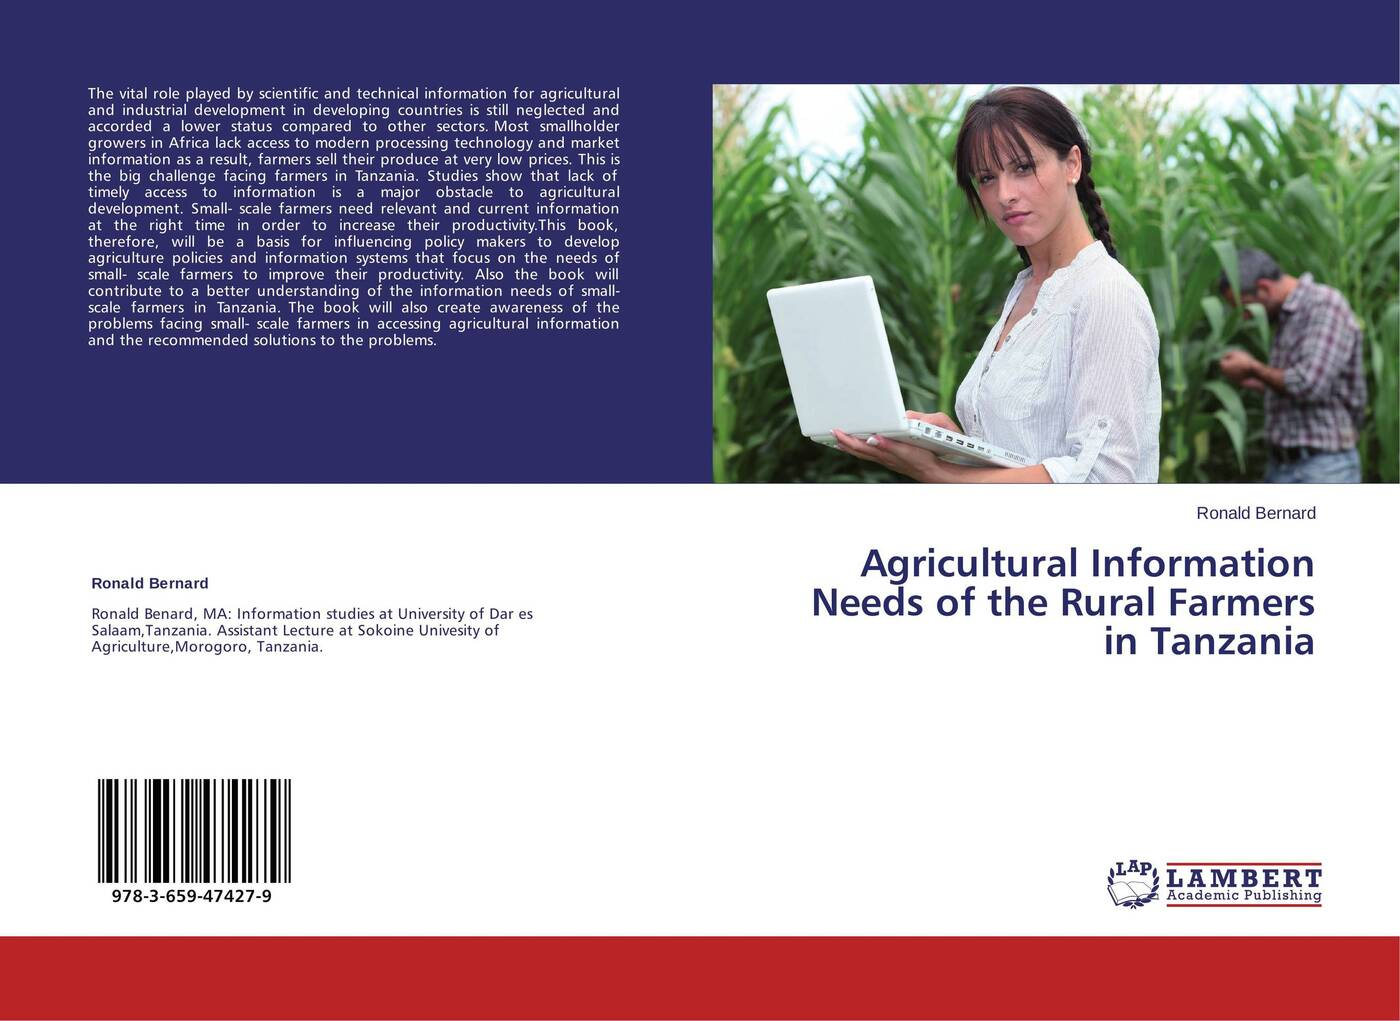 Ronald Bernard Agricultural Information Needs of the Rural Farmers in Tanzania facing the modern